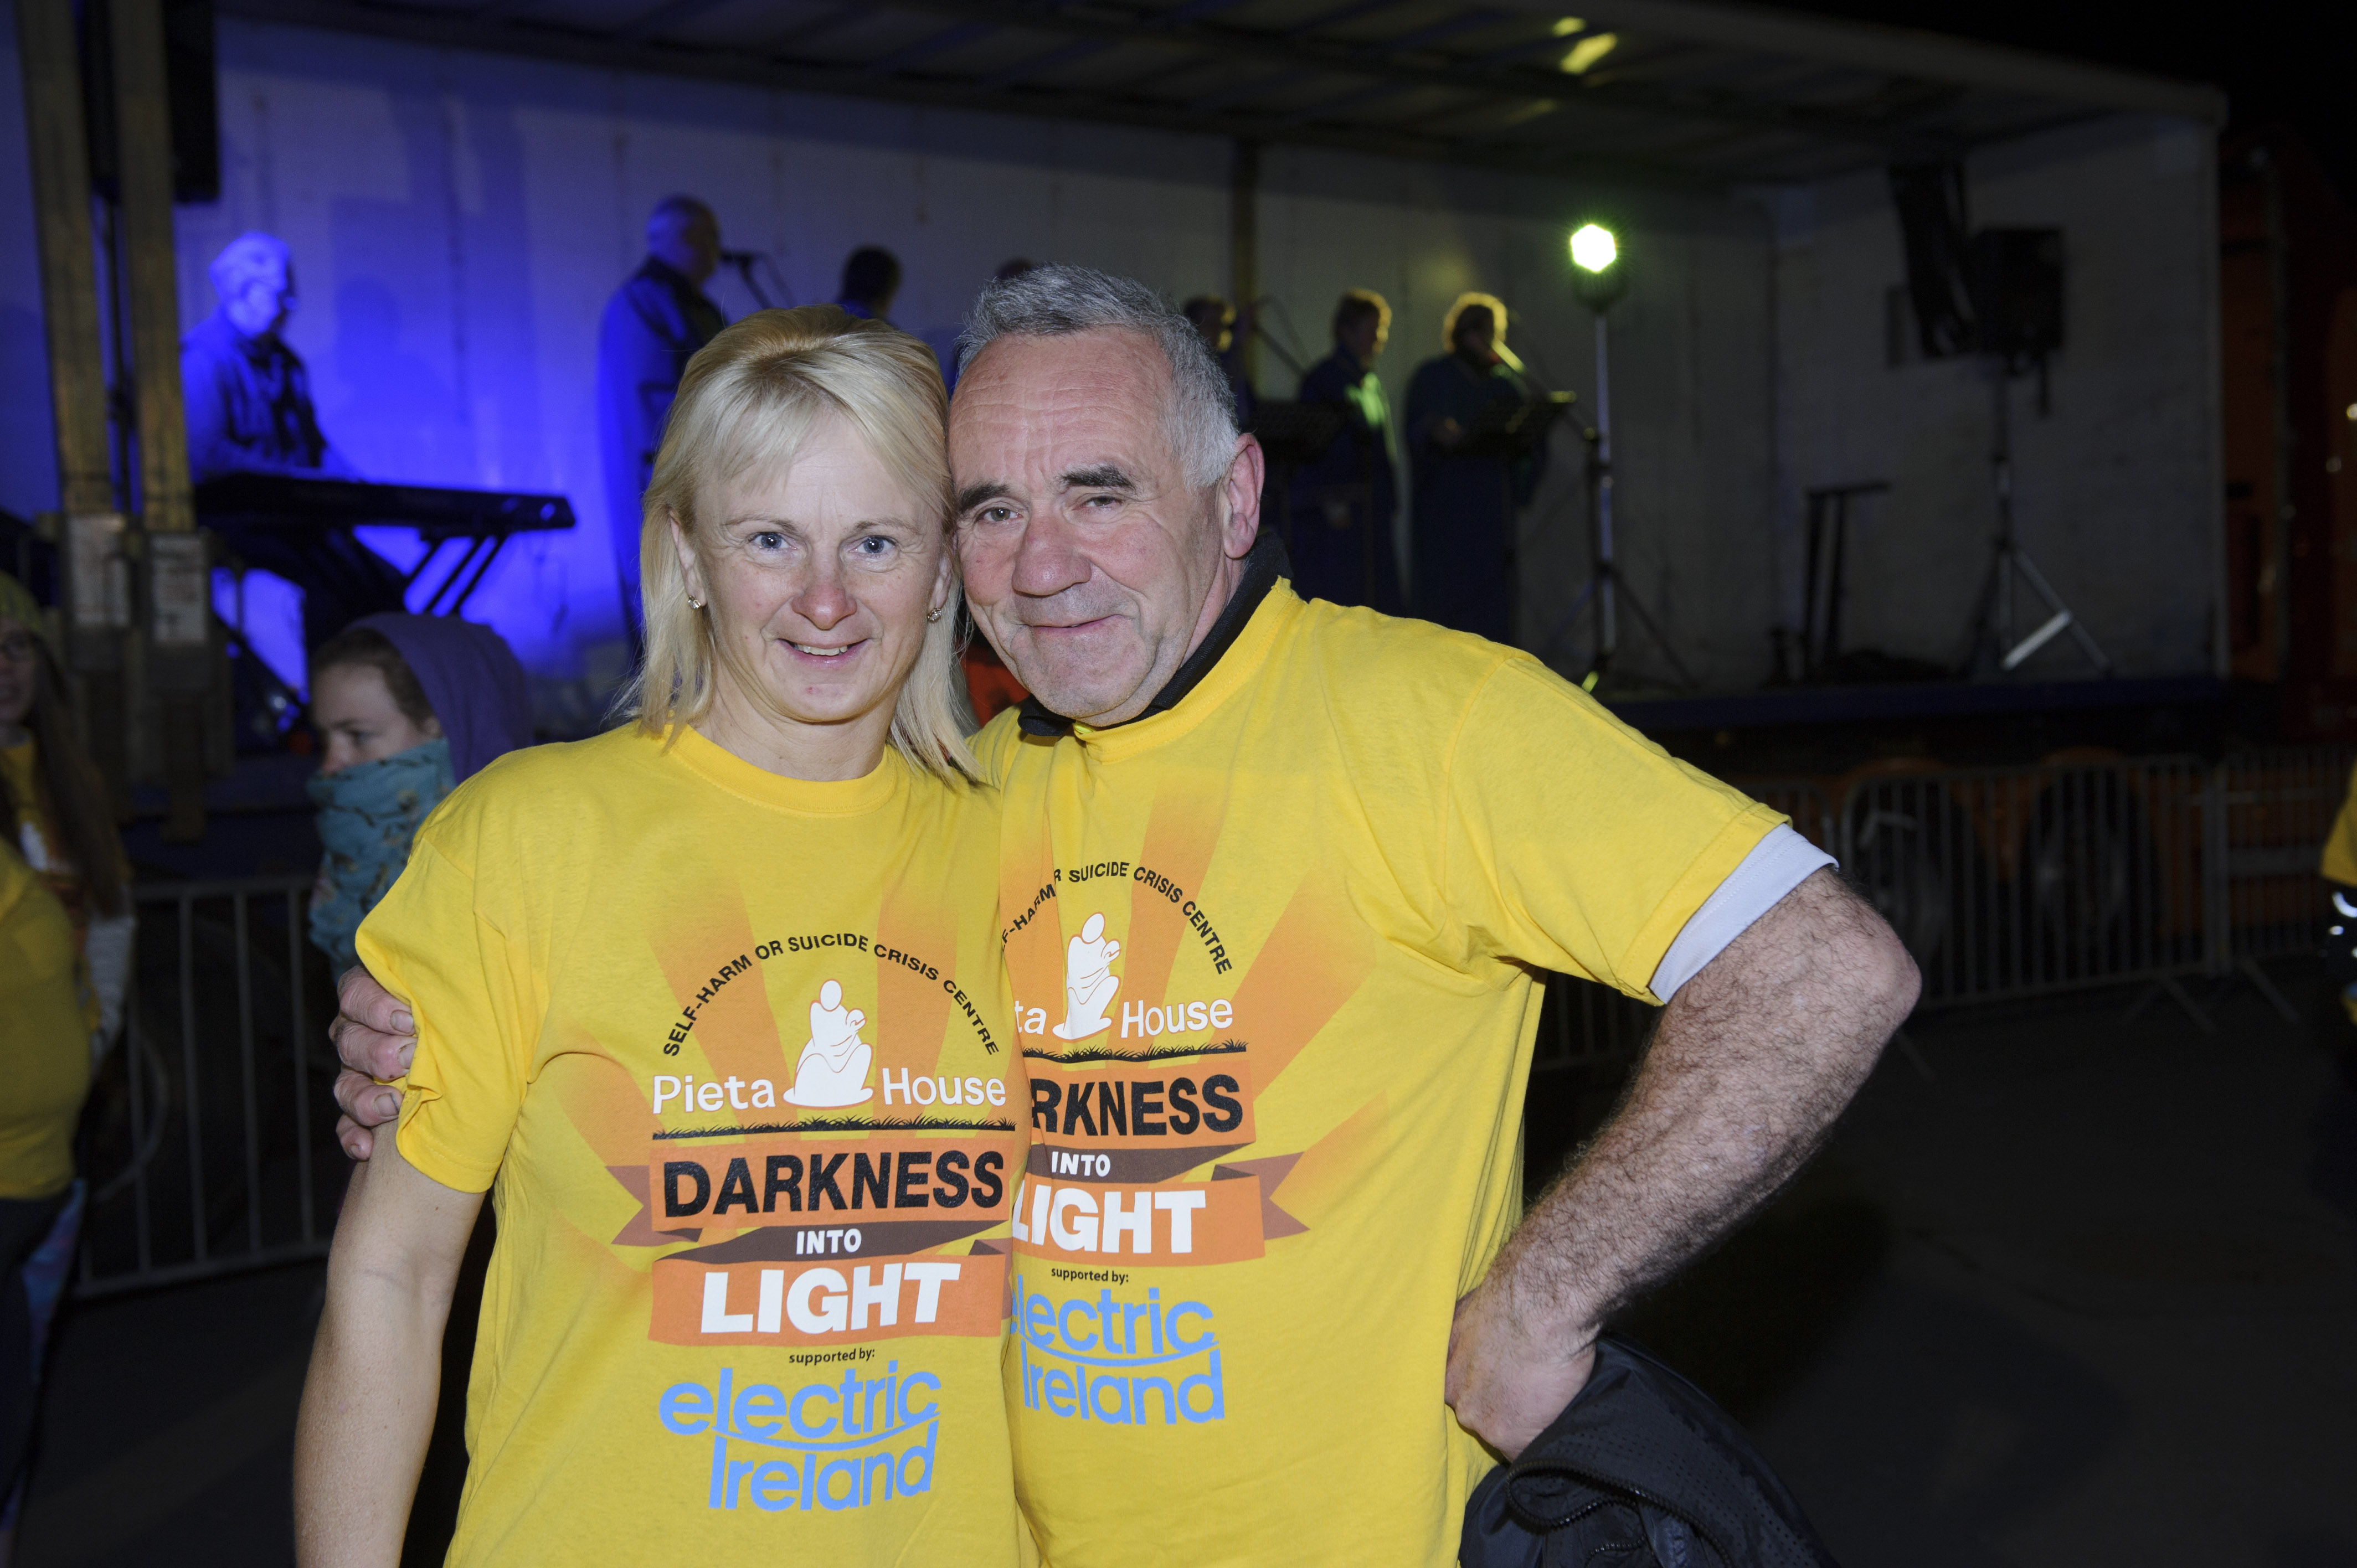 Kay and Joe Kelly from Clogher, at the Darkness Into Light 5k in Monaghan for Pieta House. ©Rory Geary/The Northern Standard